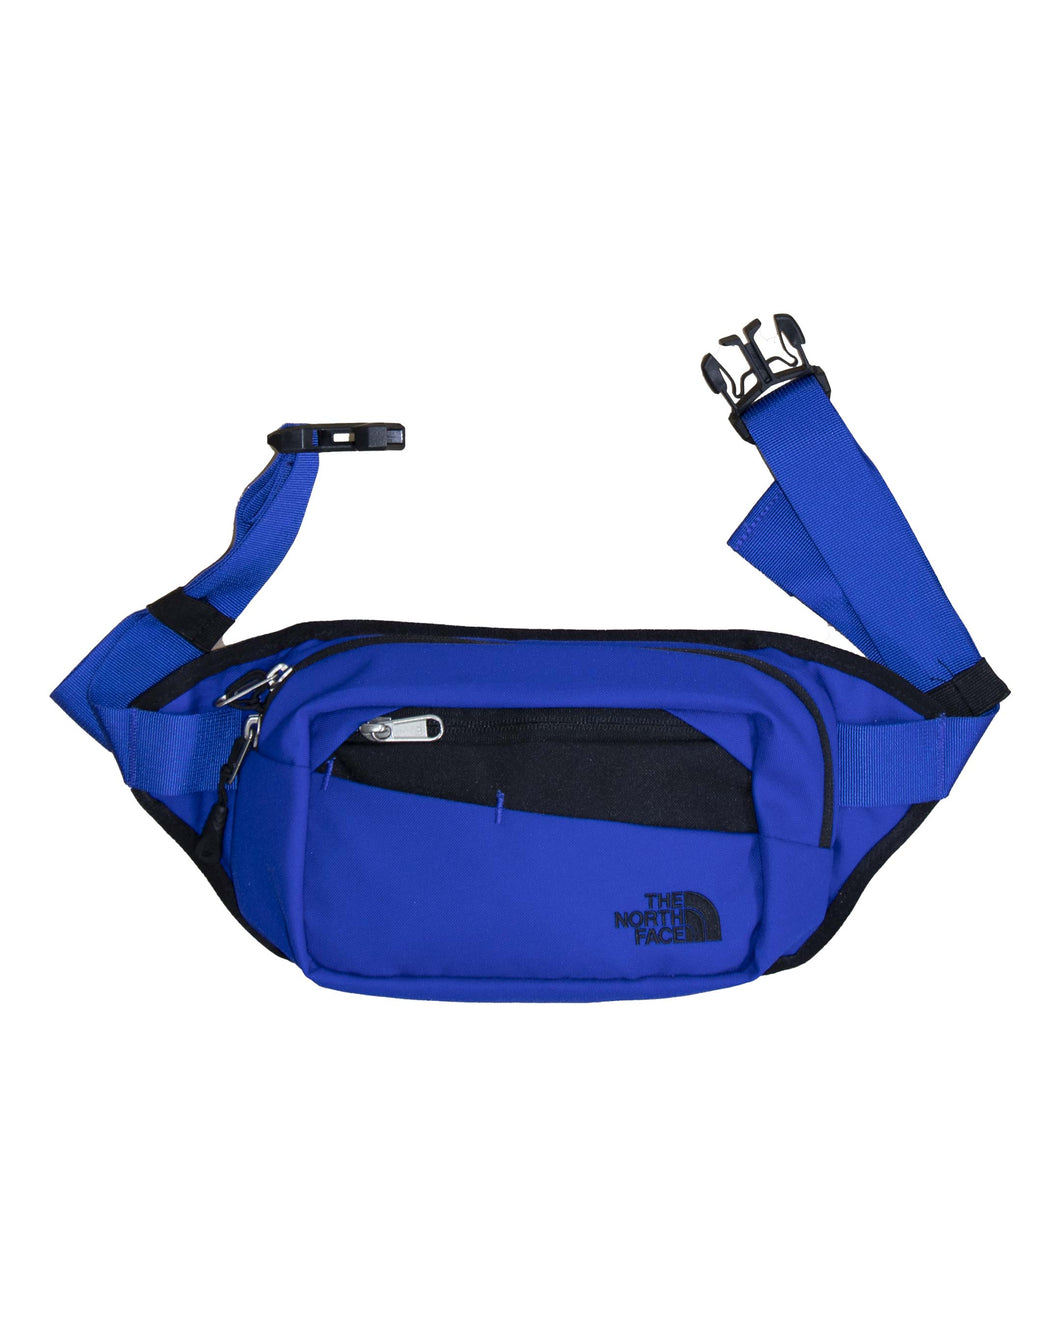 The North Face Marsupio Bozer Hip Pack II Blue Black